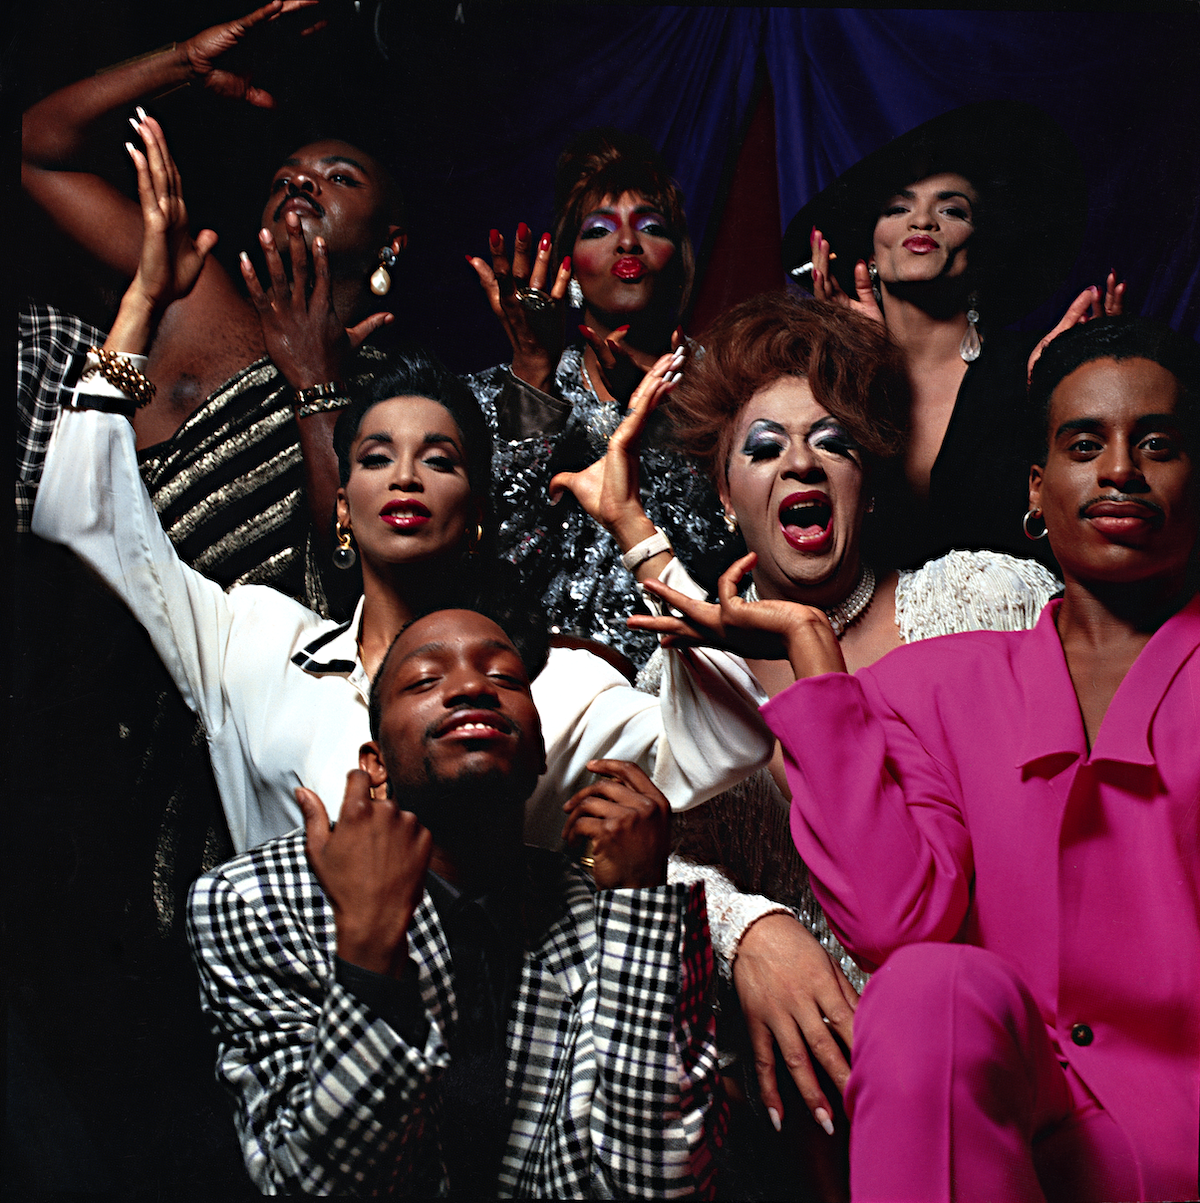 Image from Paris is Burning